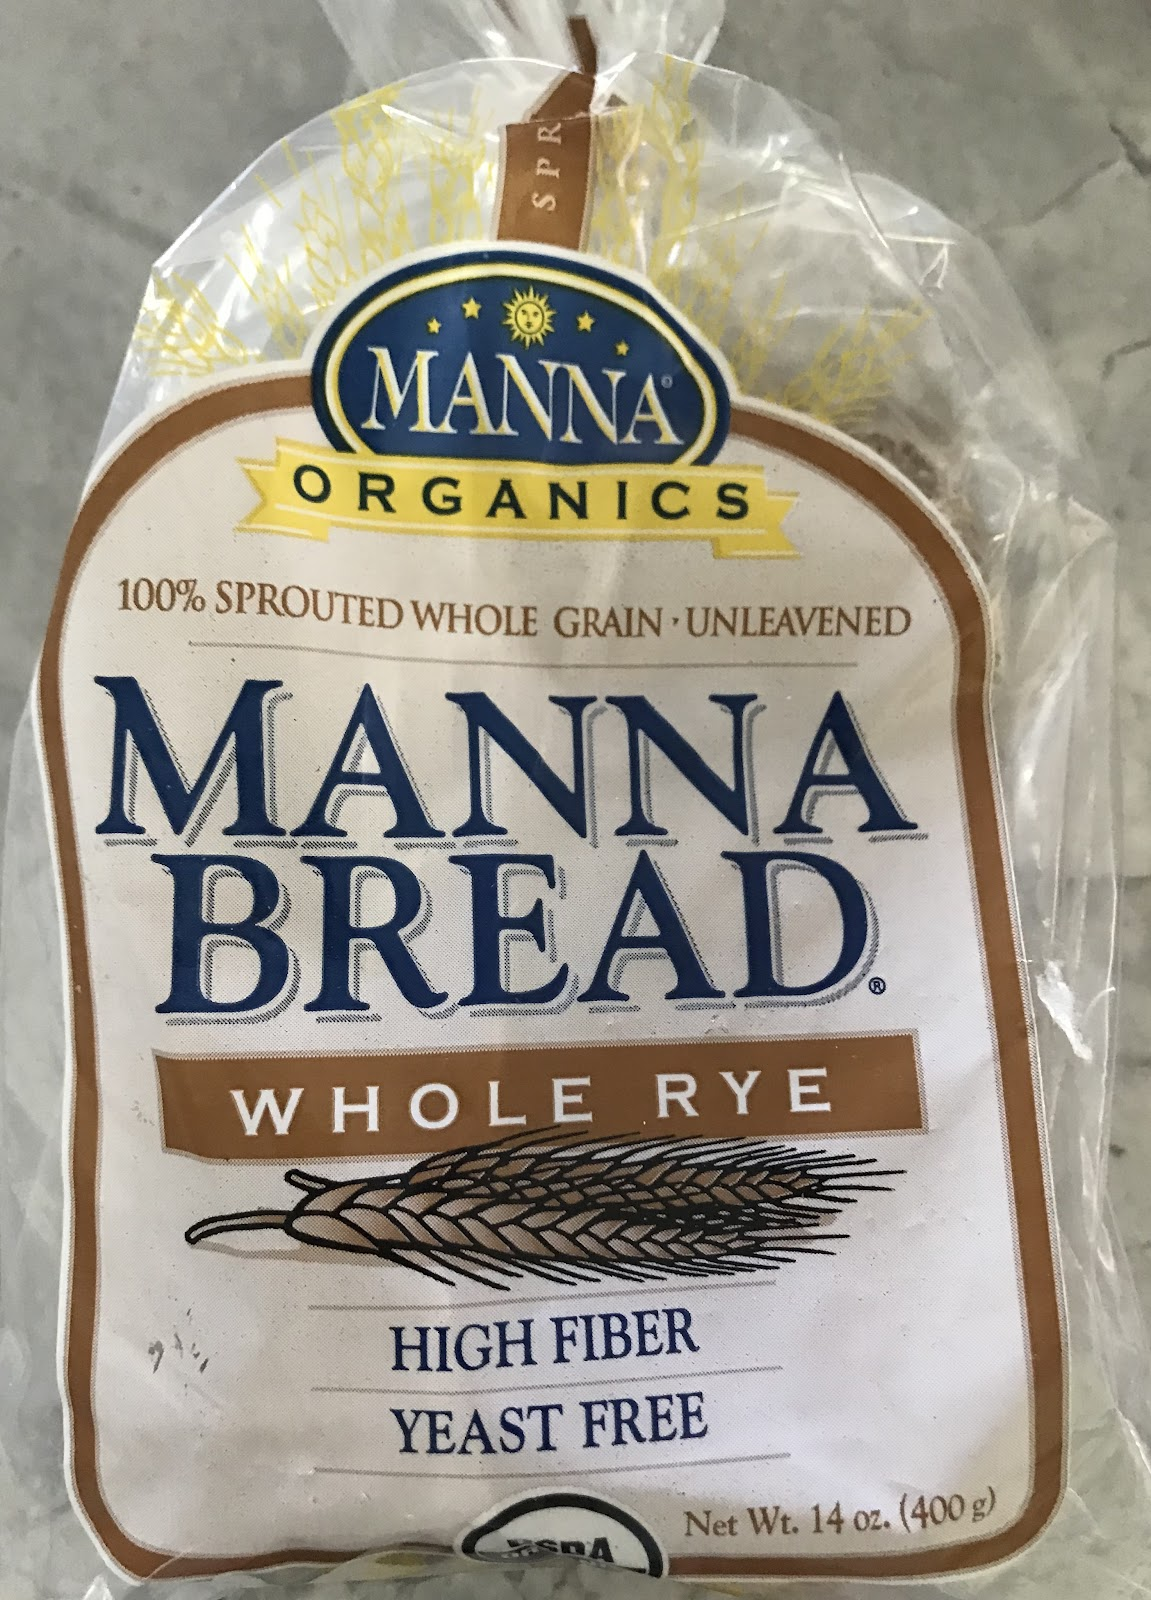 This is an example of 100% sprouted, unleavened bread.